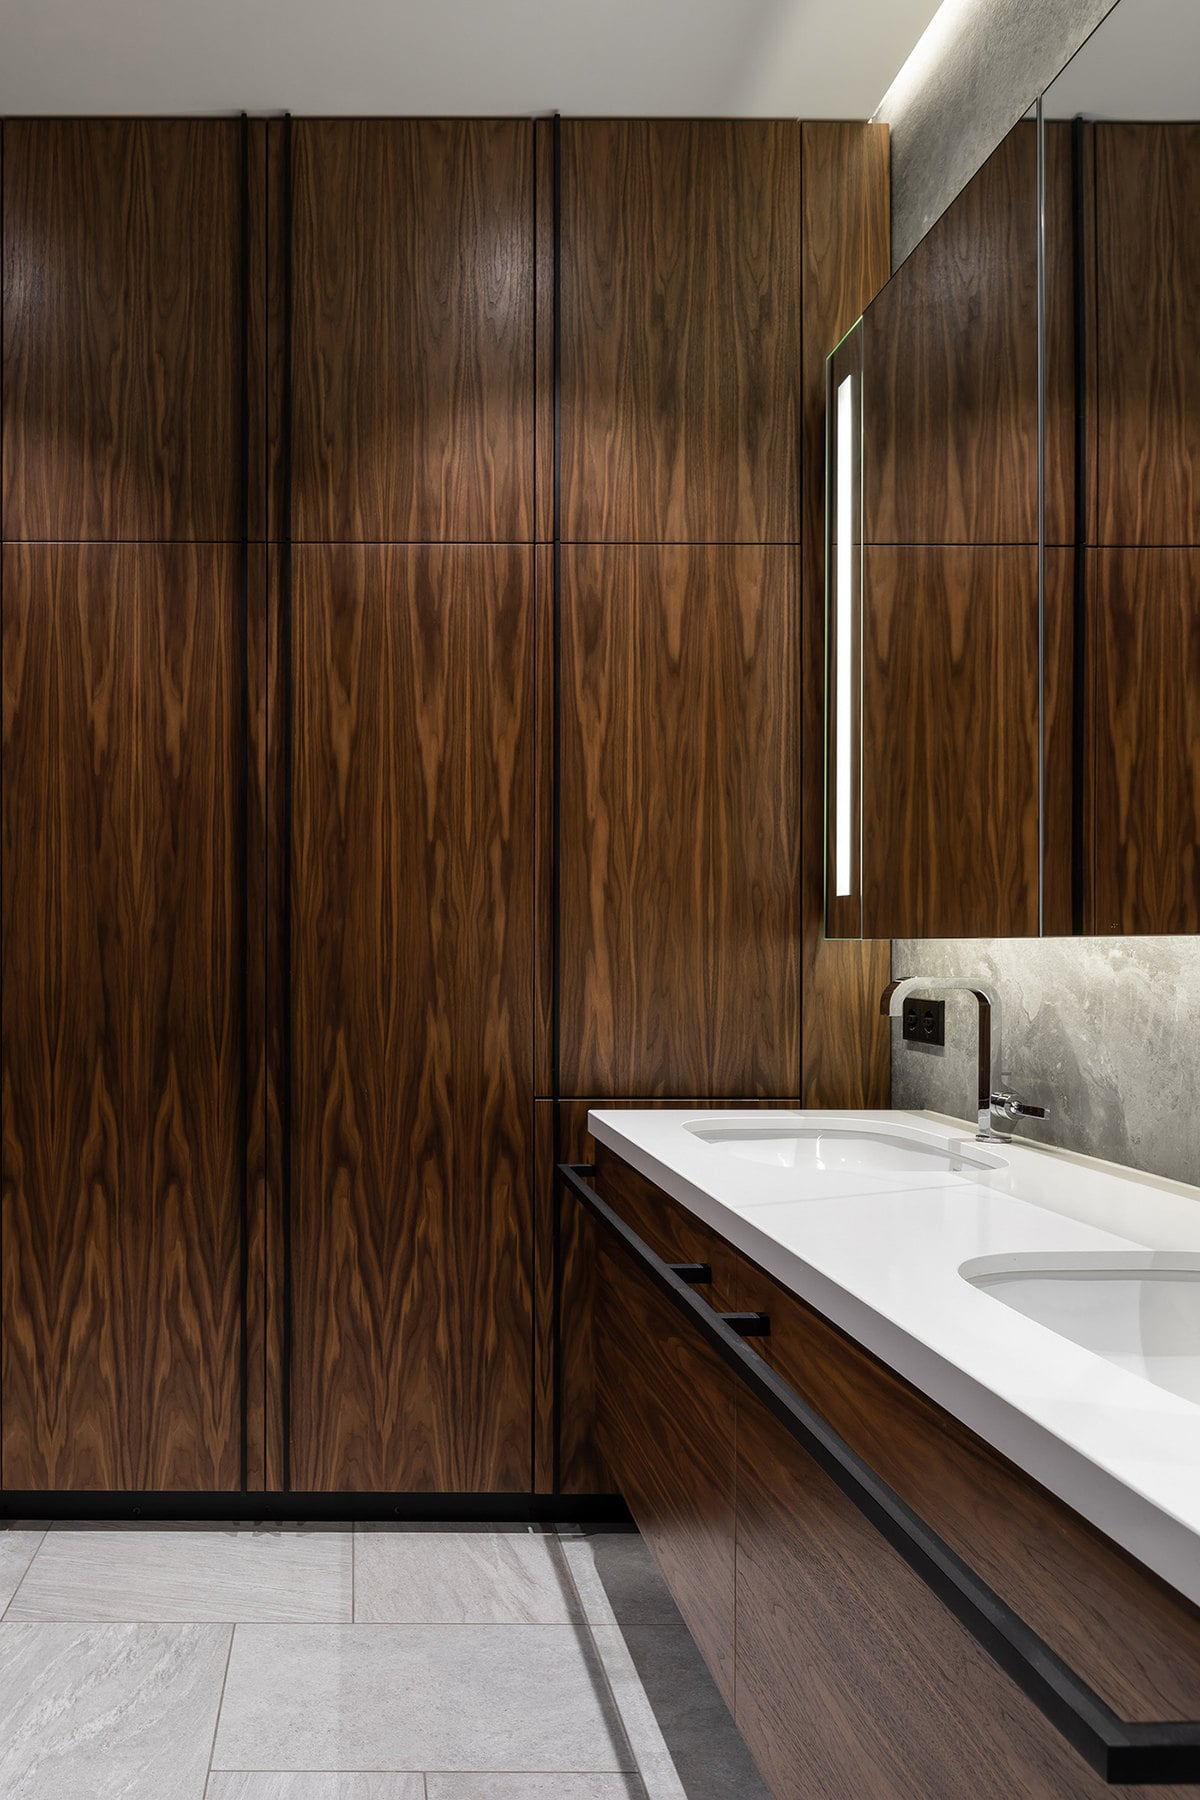 This bathroom has dark brown walls to match the tone of the vanity and its drawers. These are then contrasted by the bright white countertop with two sinks and topped with a large mirror.